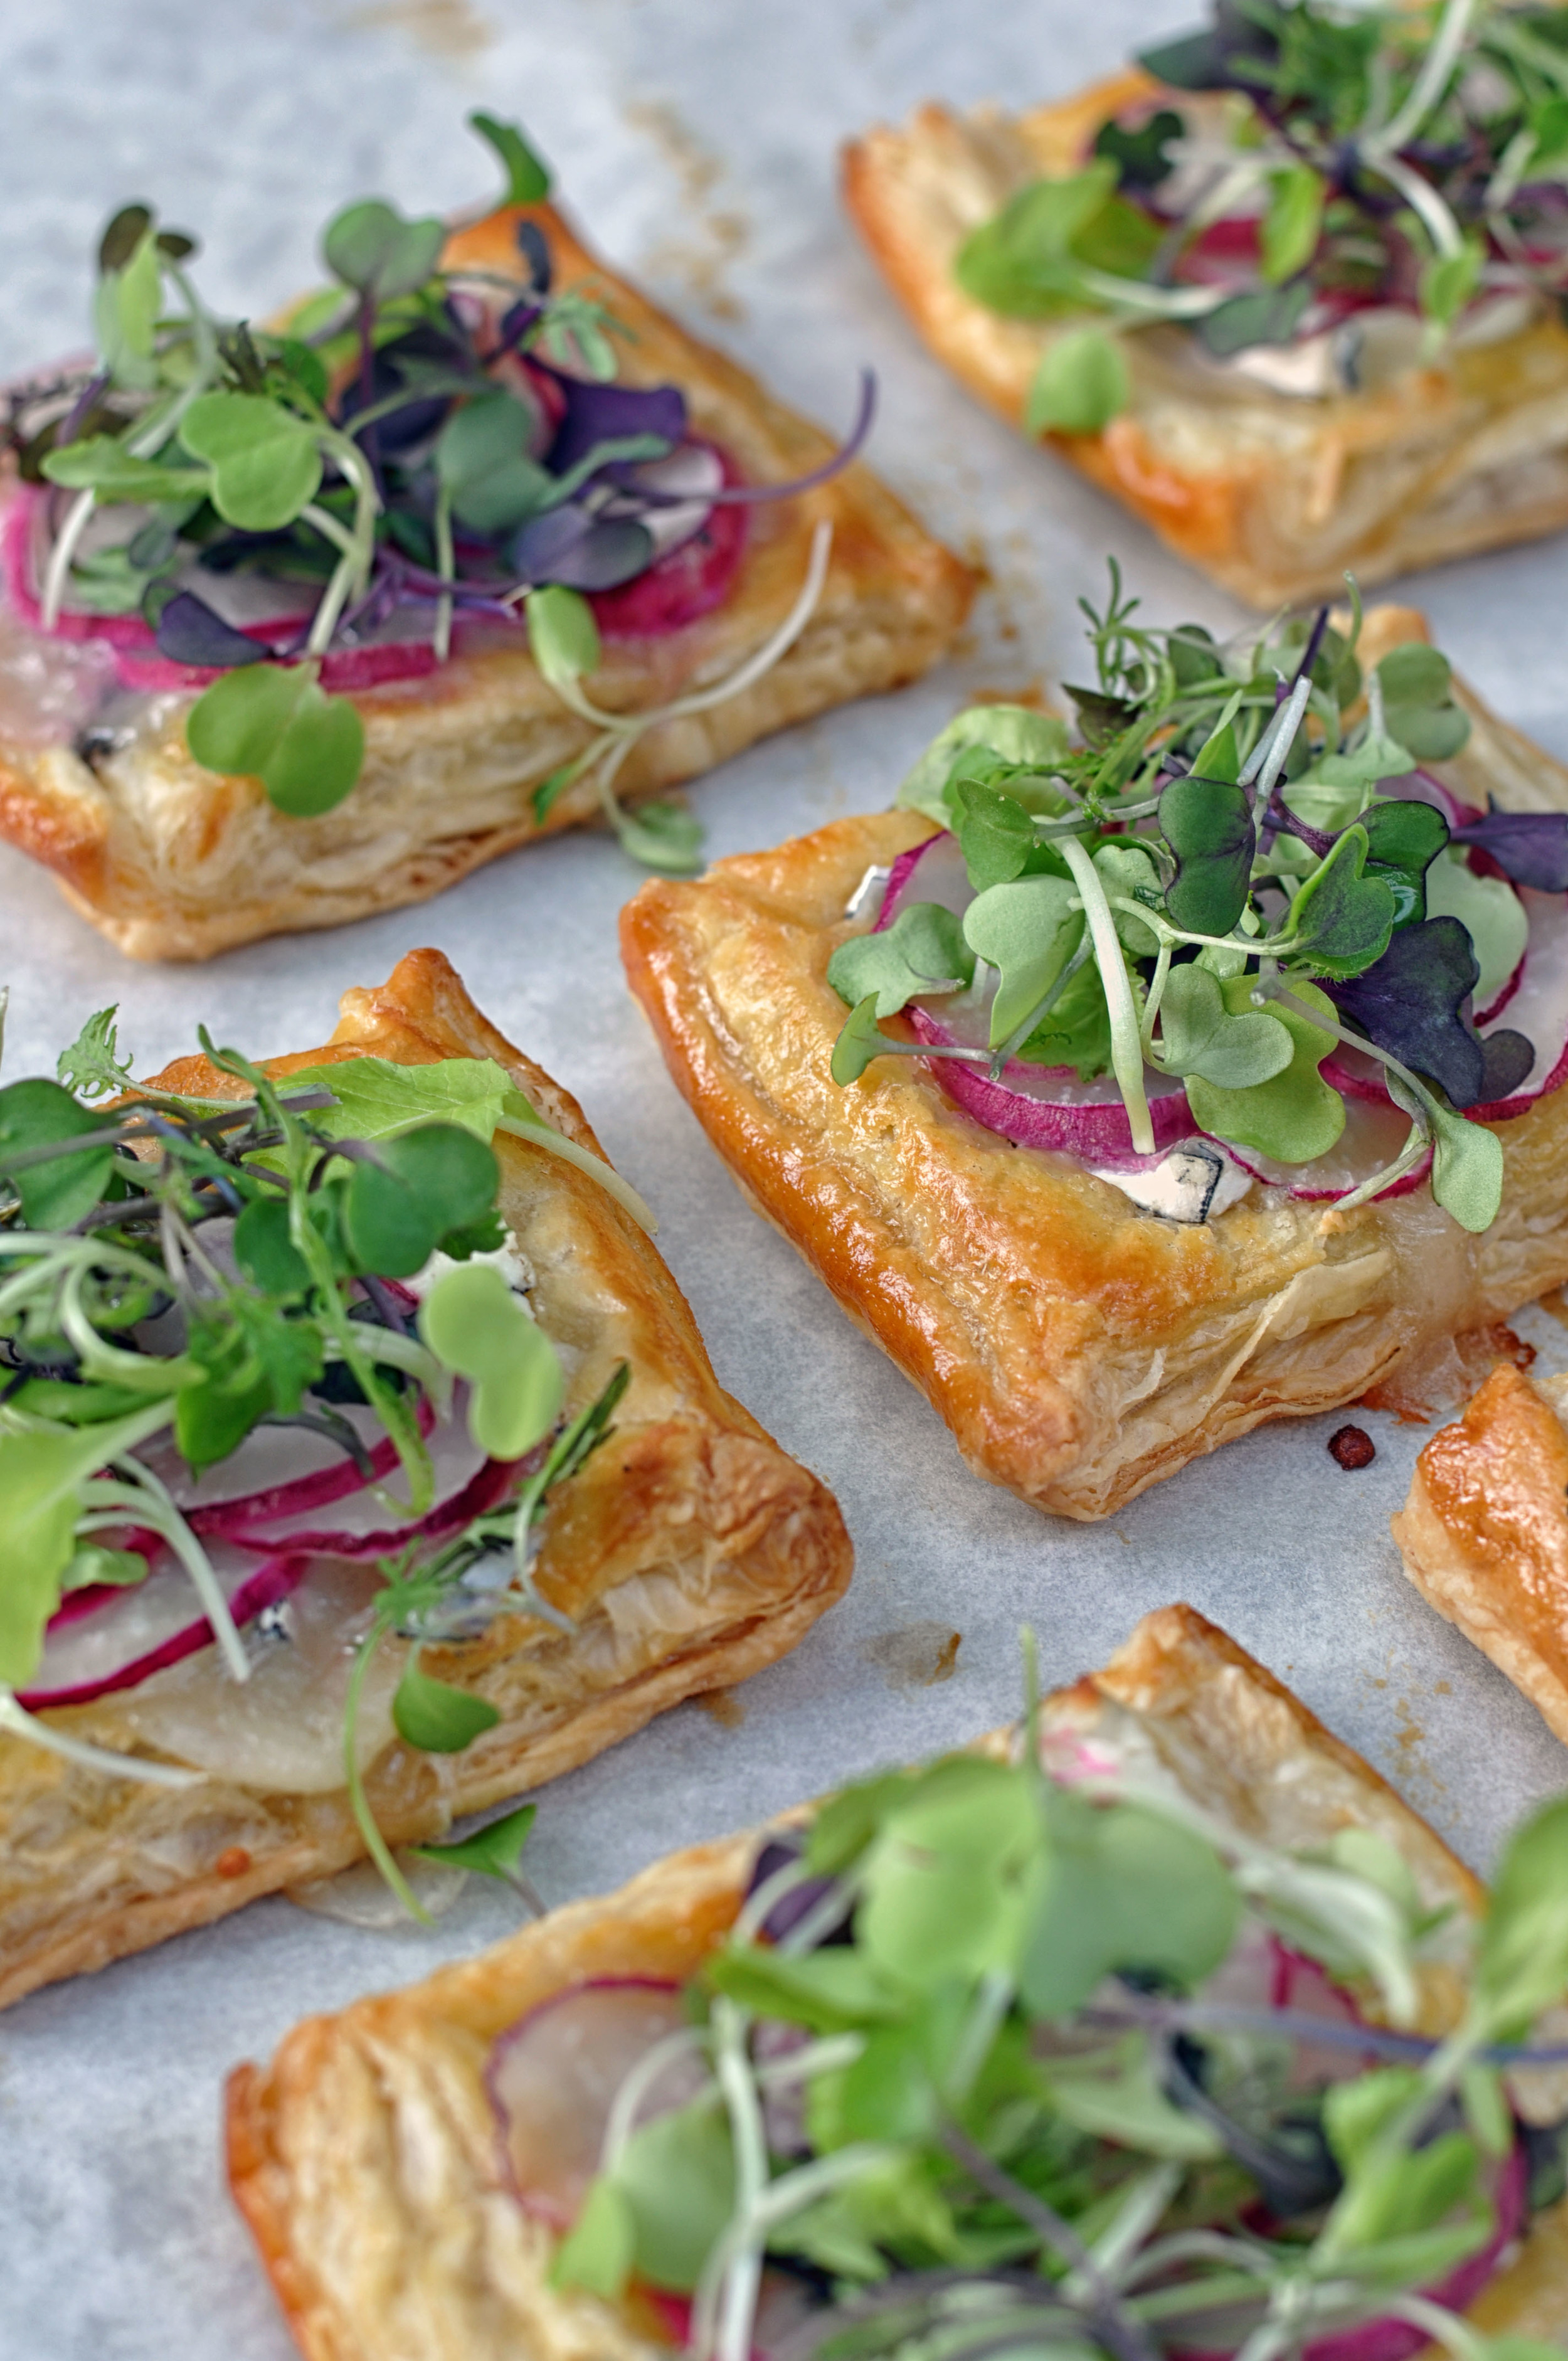 Mini Radish Puffs - These mini puff pastry tarts with goat's cheese, radishes, and microgreens are delicious, peppery, and delightfully rich. They are a perfect appetizer or cocktail party pass around.